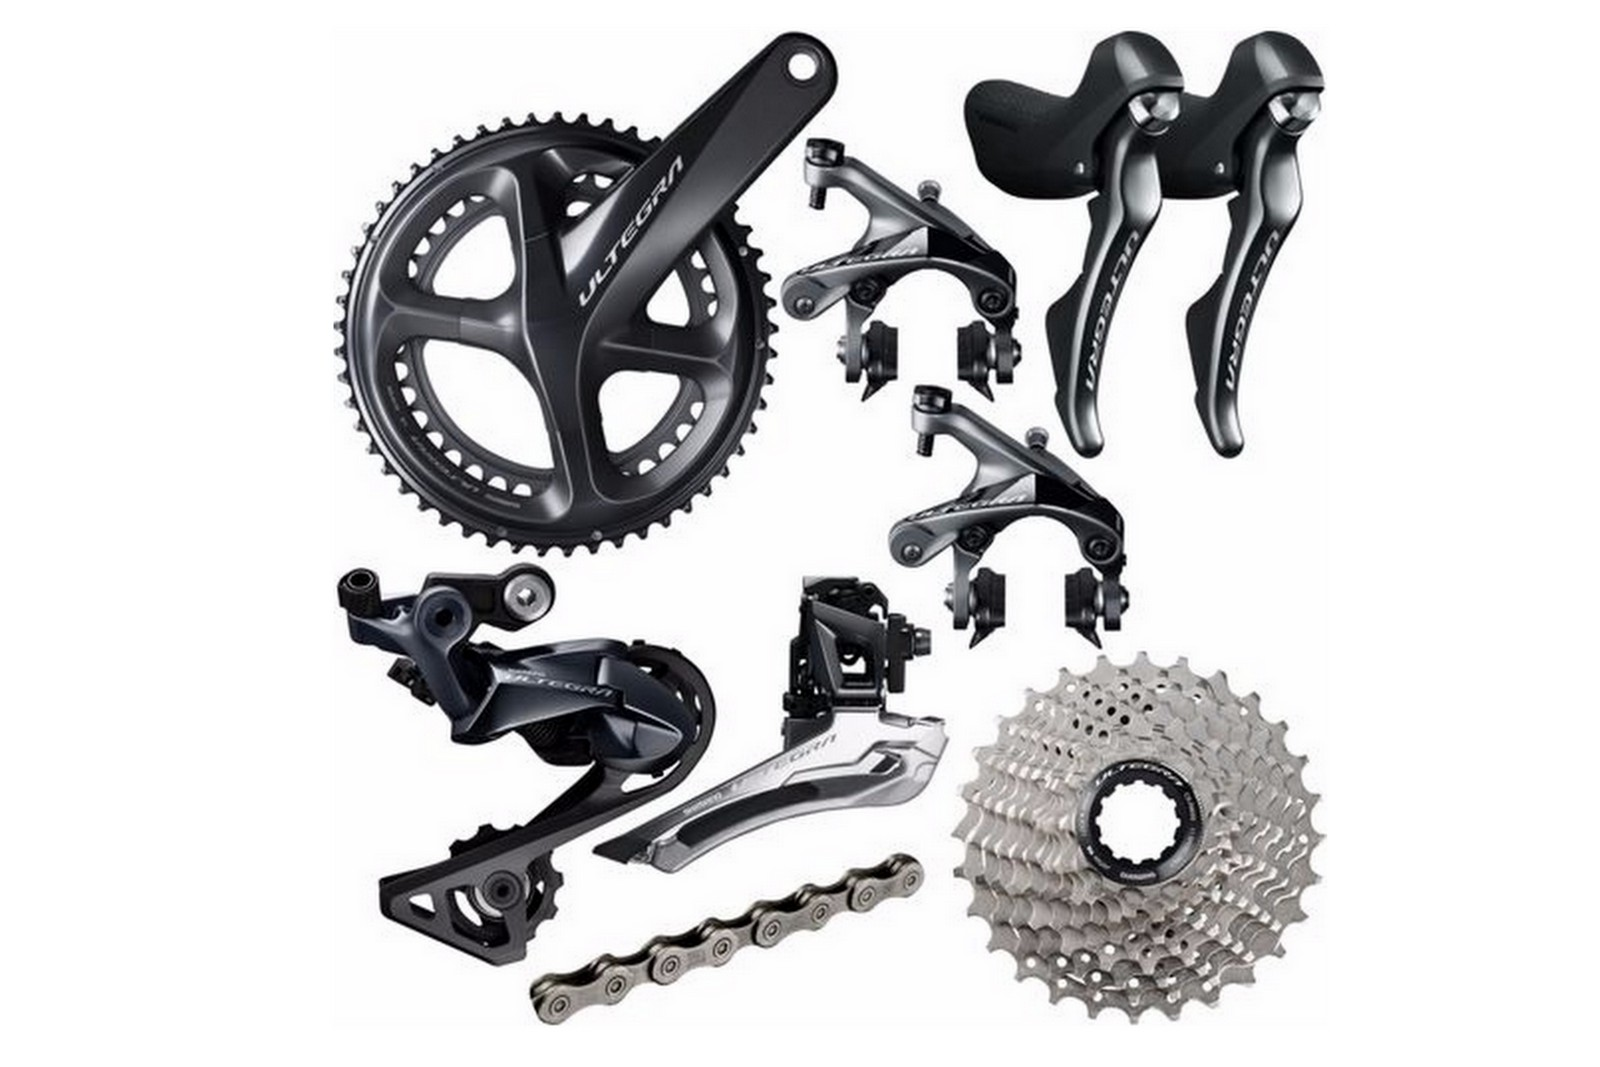 Shimano groupsets Ultegra - R8000 series